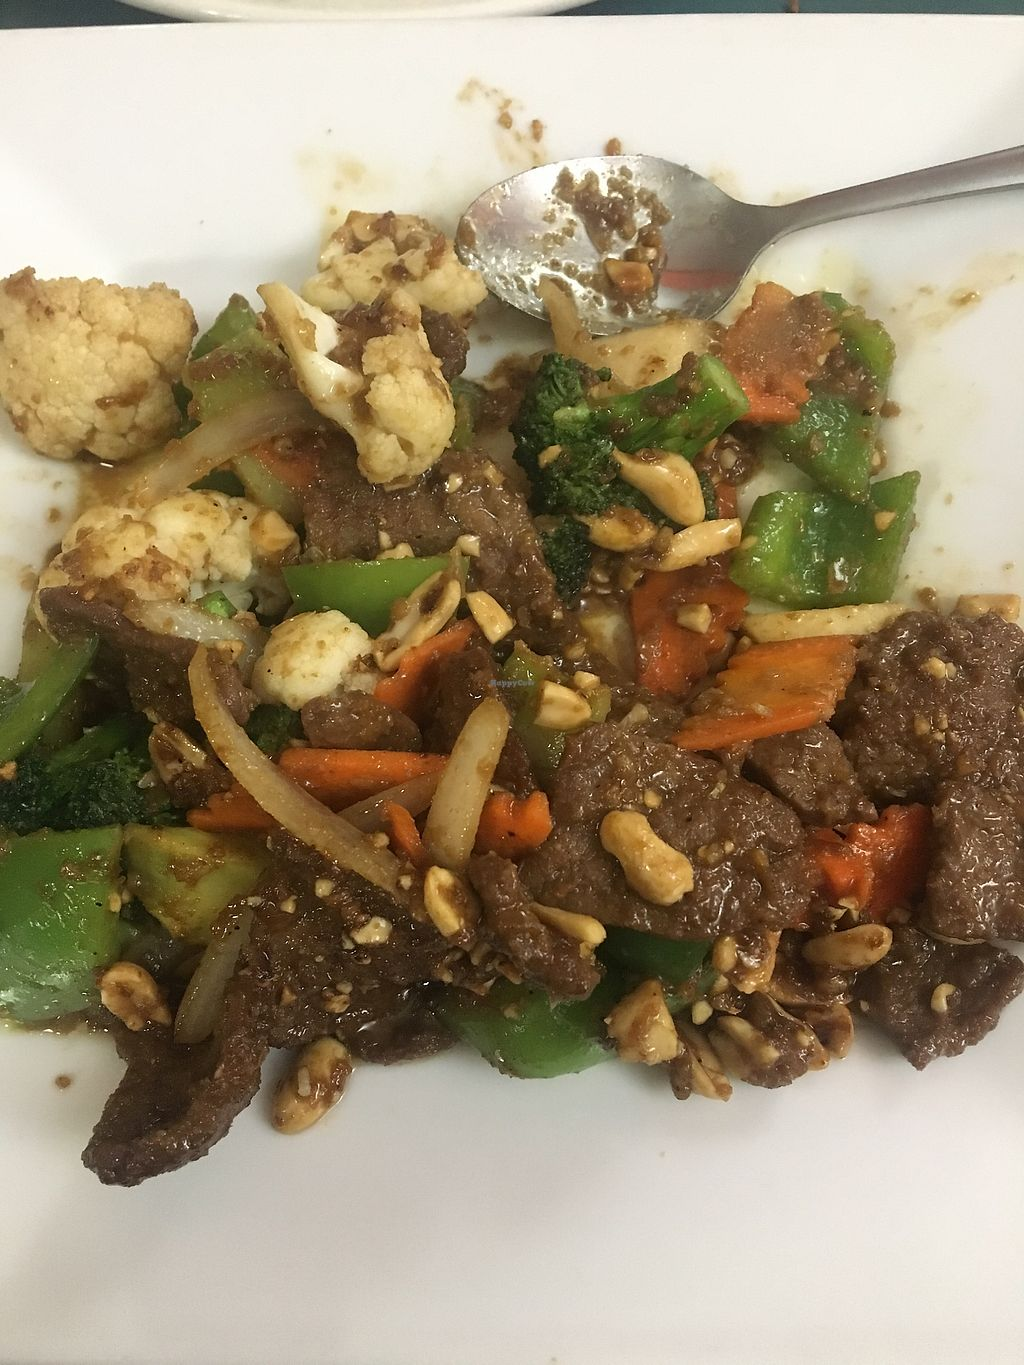 """Photo of Happy Veggie  by <a href=""""/members/profile/jkseoulcraic"""">jkseoulcraic</a> <br/>Kung pao with beef. So good! <br/> March 1, 2018  - <a href='/contact/abuse/image/9009/365199'>Report</a>"""